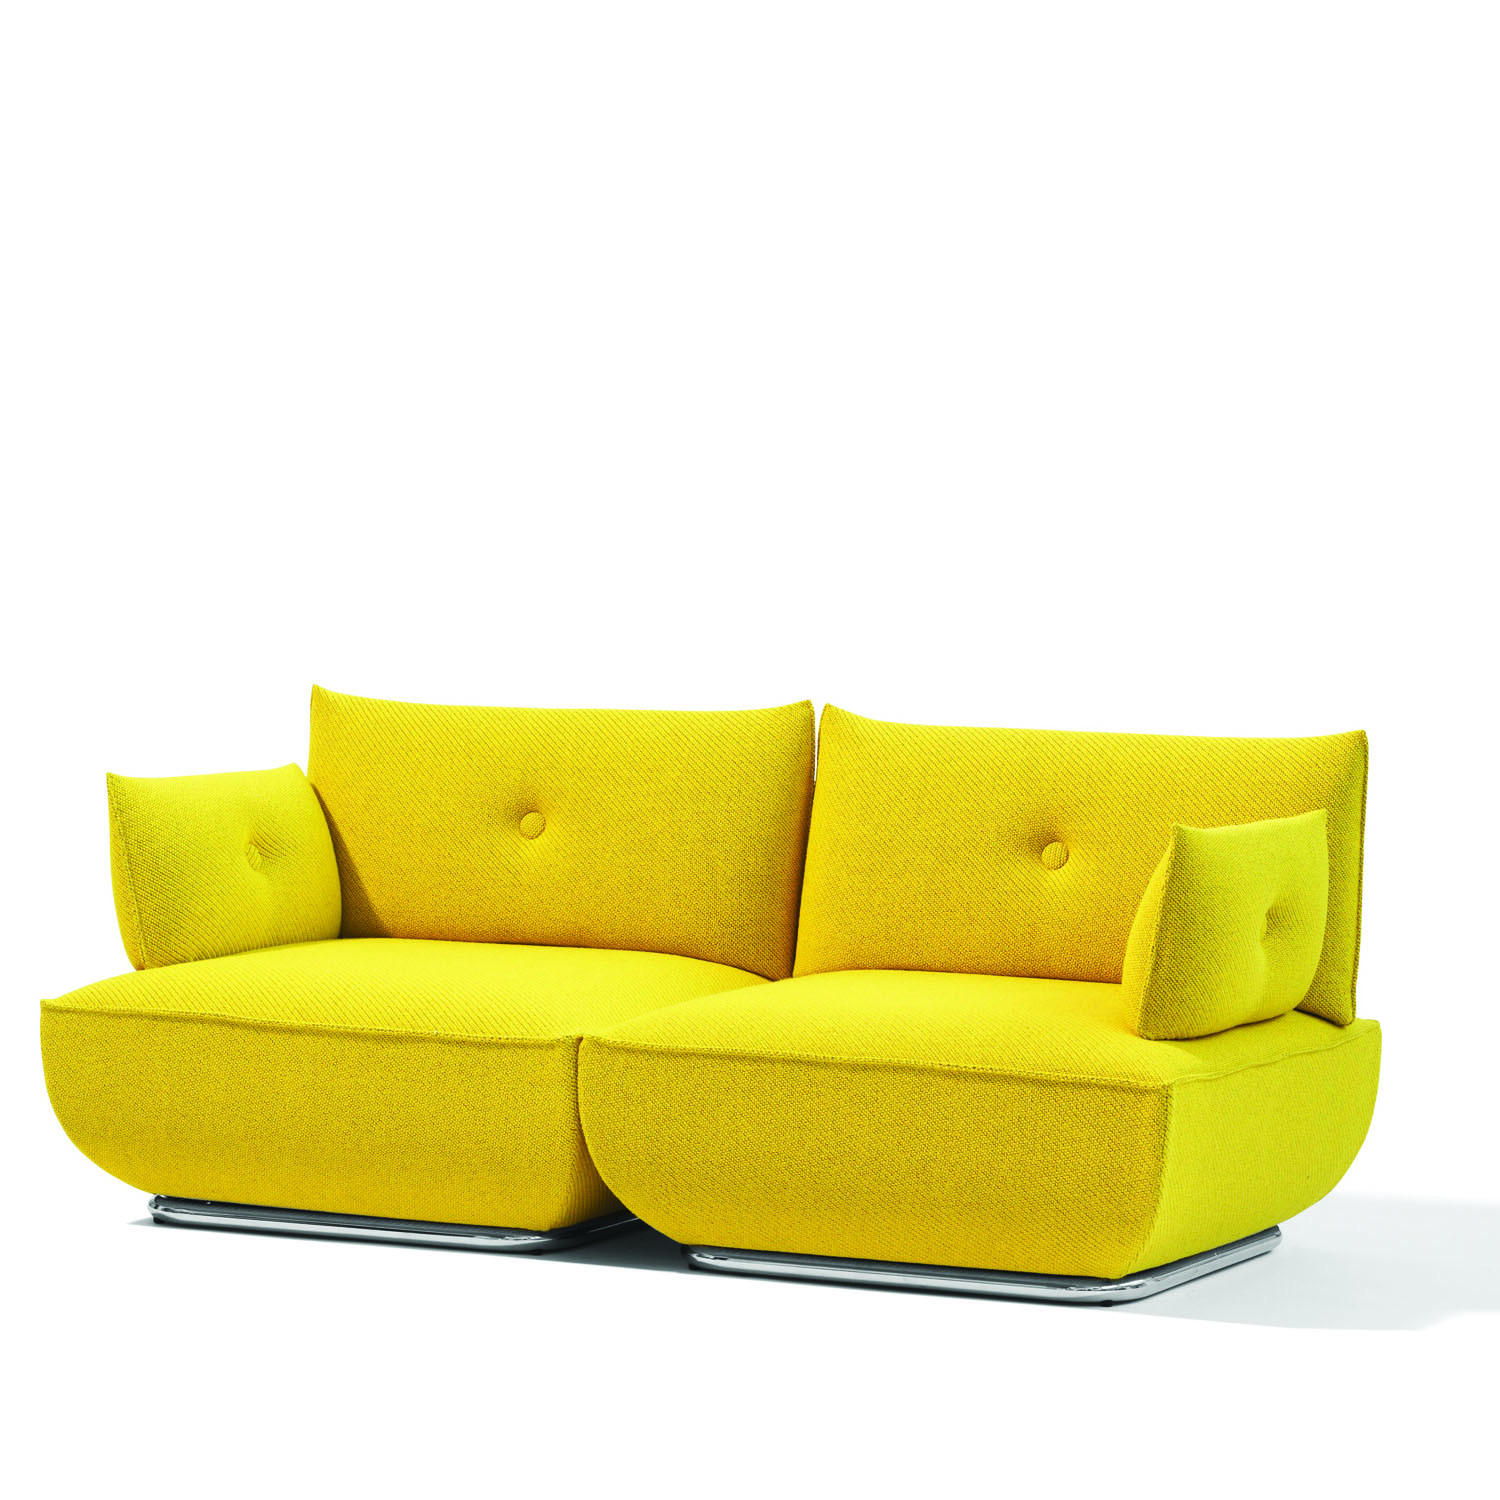 Dunder Two Seat Sofa S60